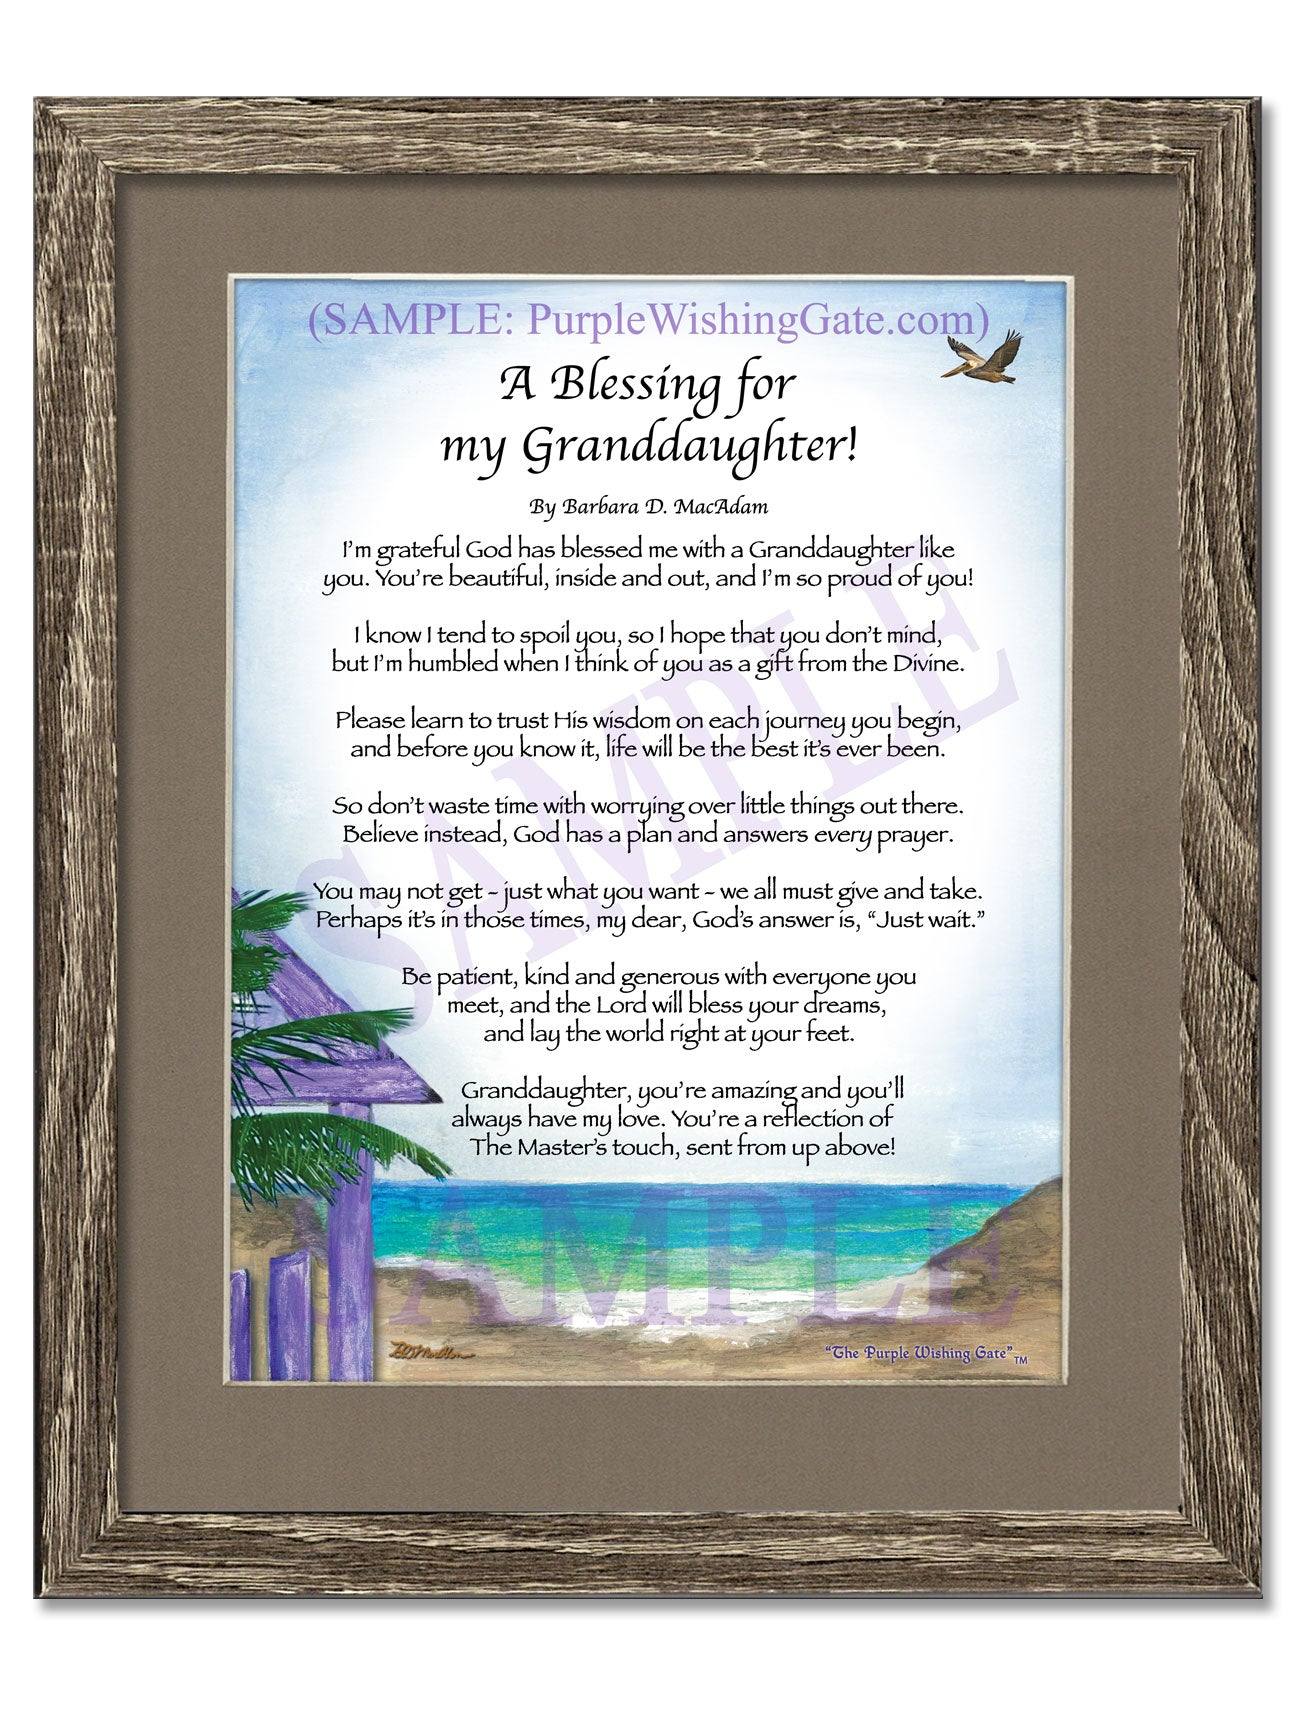 A Blessing for My Granddaughter! (child-adult) - Gifts for Granddaughter - PurpleWishingGate.com